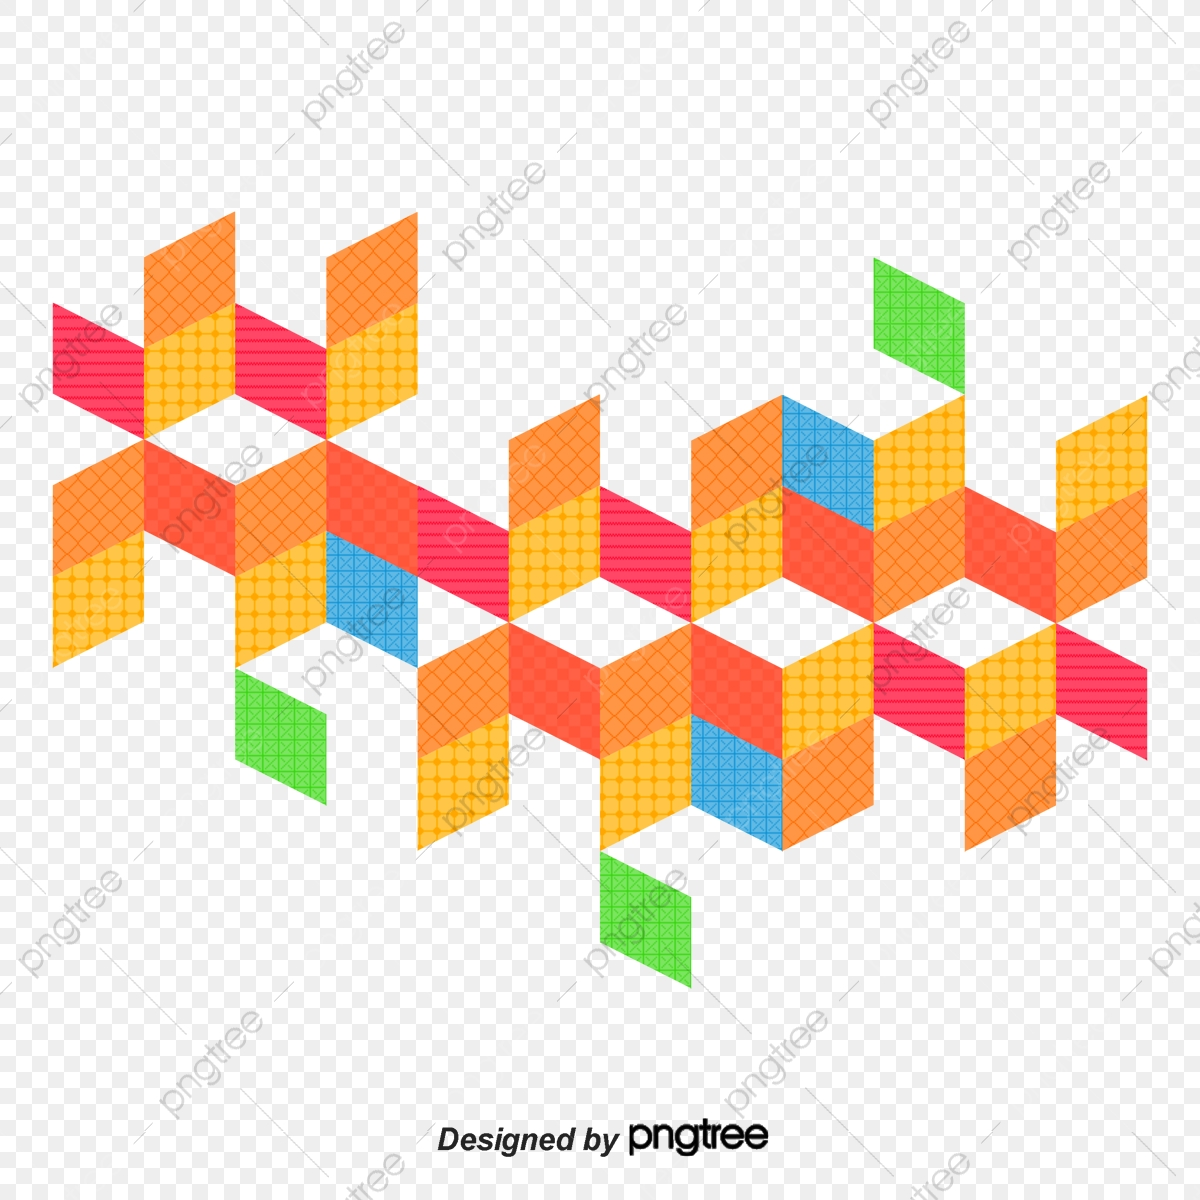 Geometric Vector Diagram, Hand, Geometric Figure, Mosaic PNG